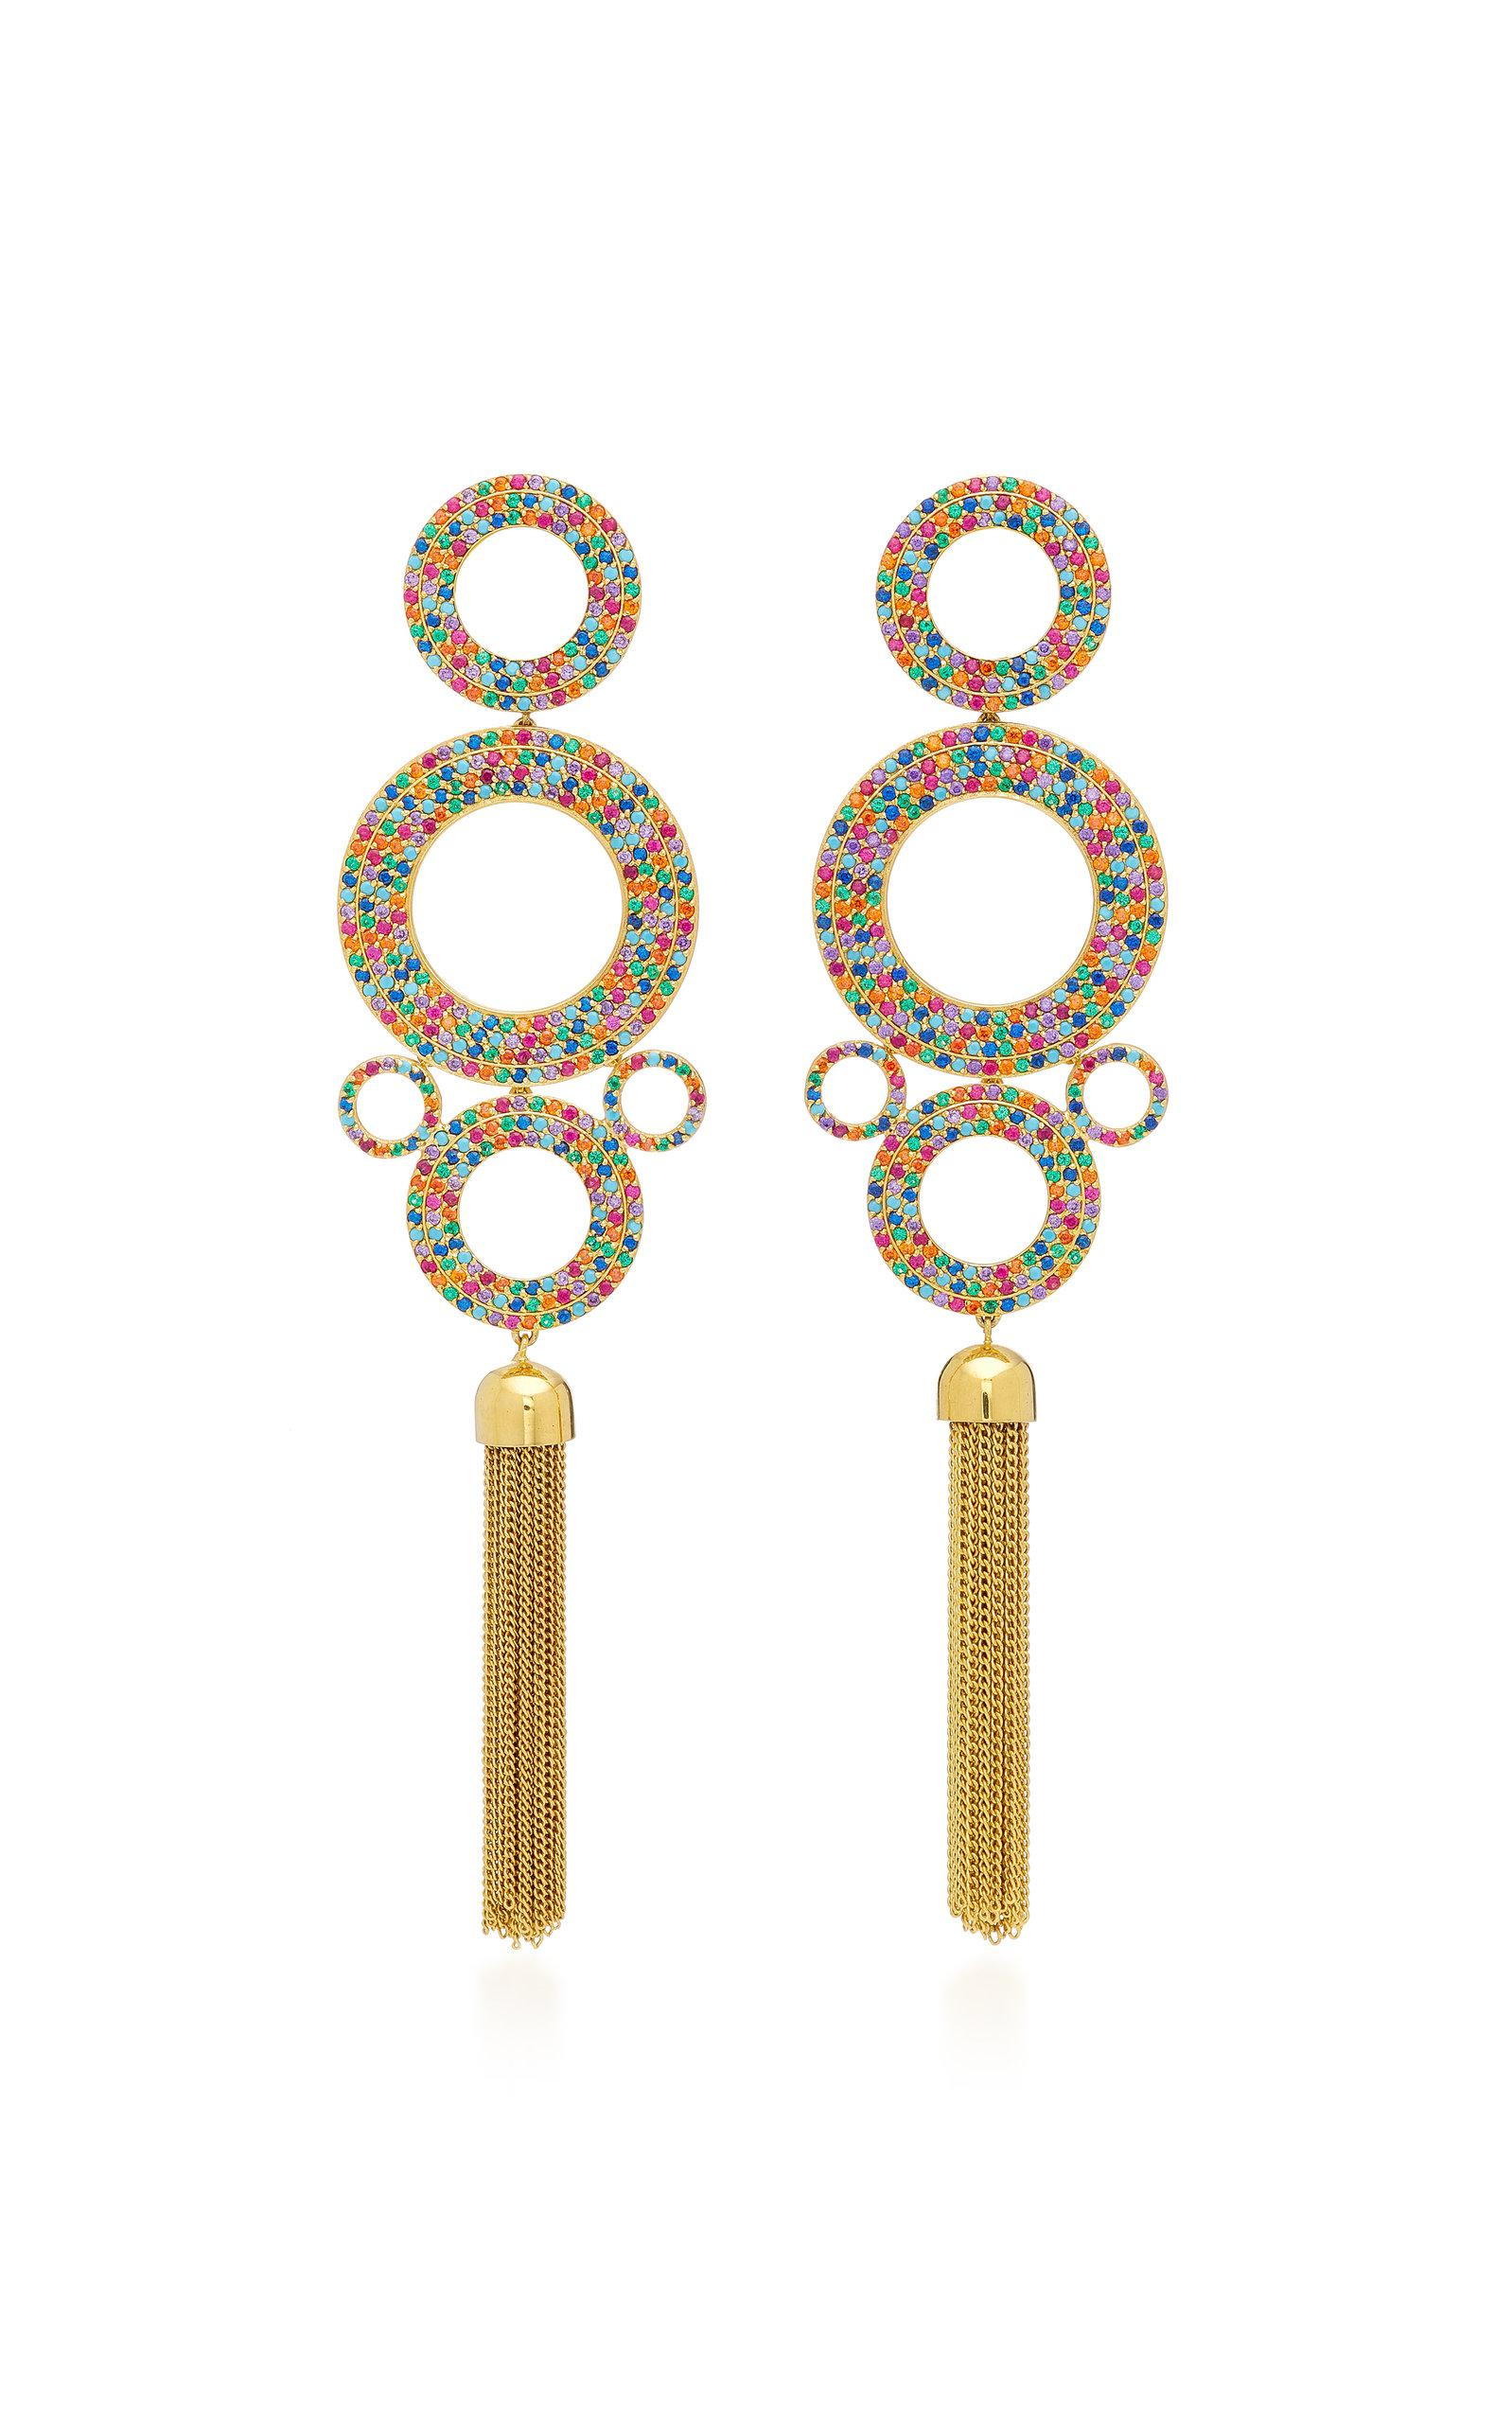 Grommet Gold-Plated Brass and Cubic Zirconia Statement Earrings Joanna Laura Constantine qzzZpsH